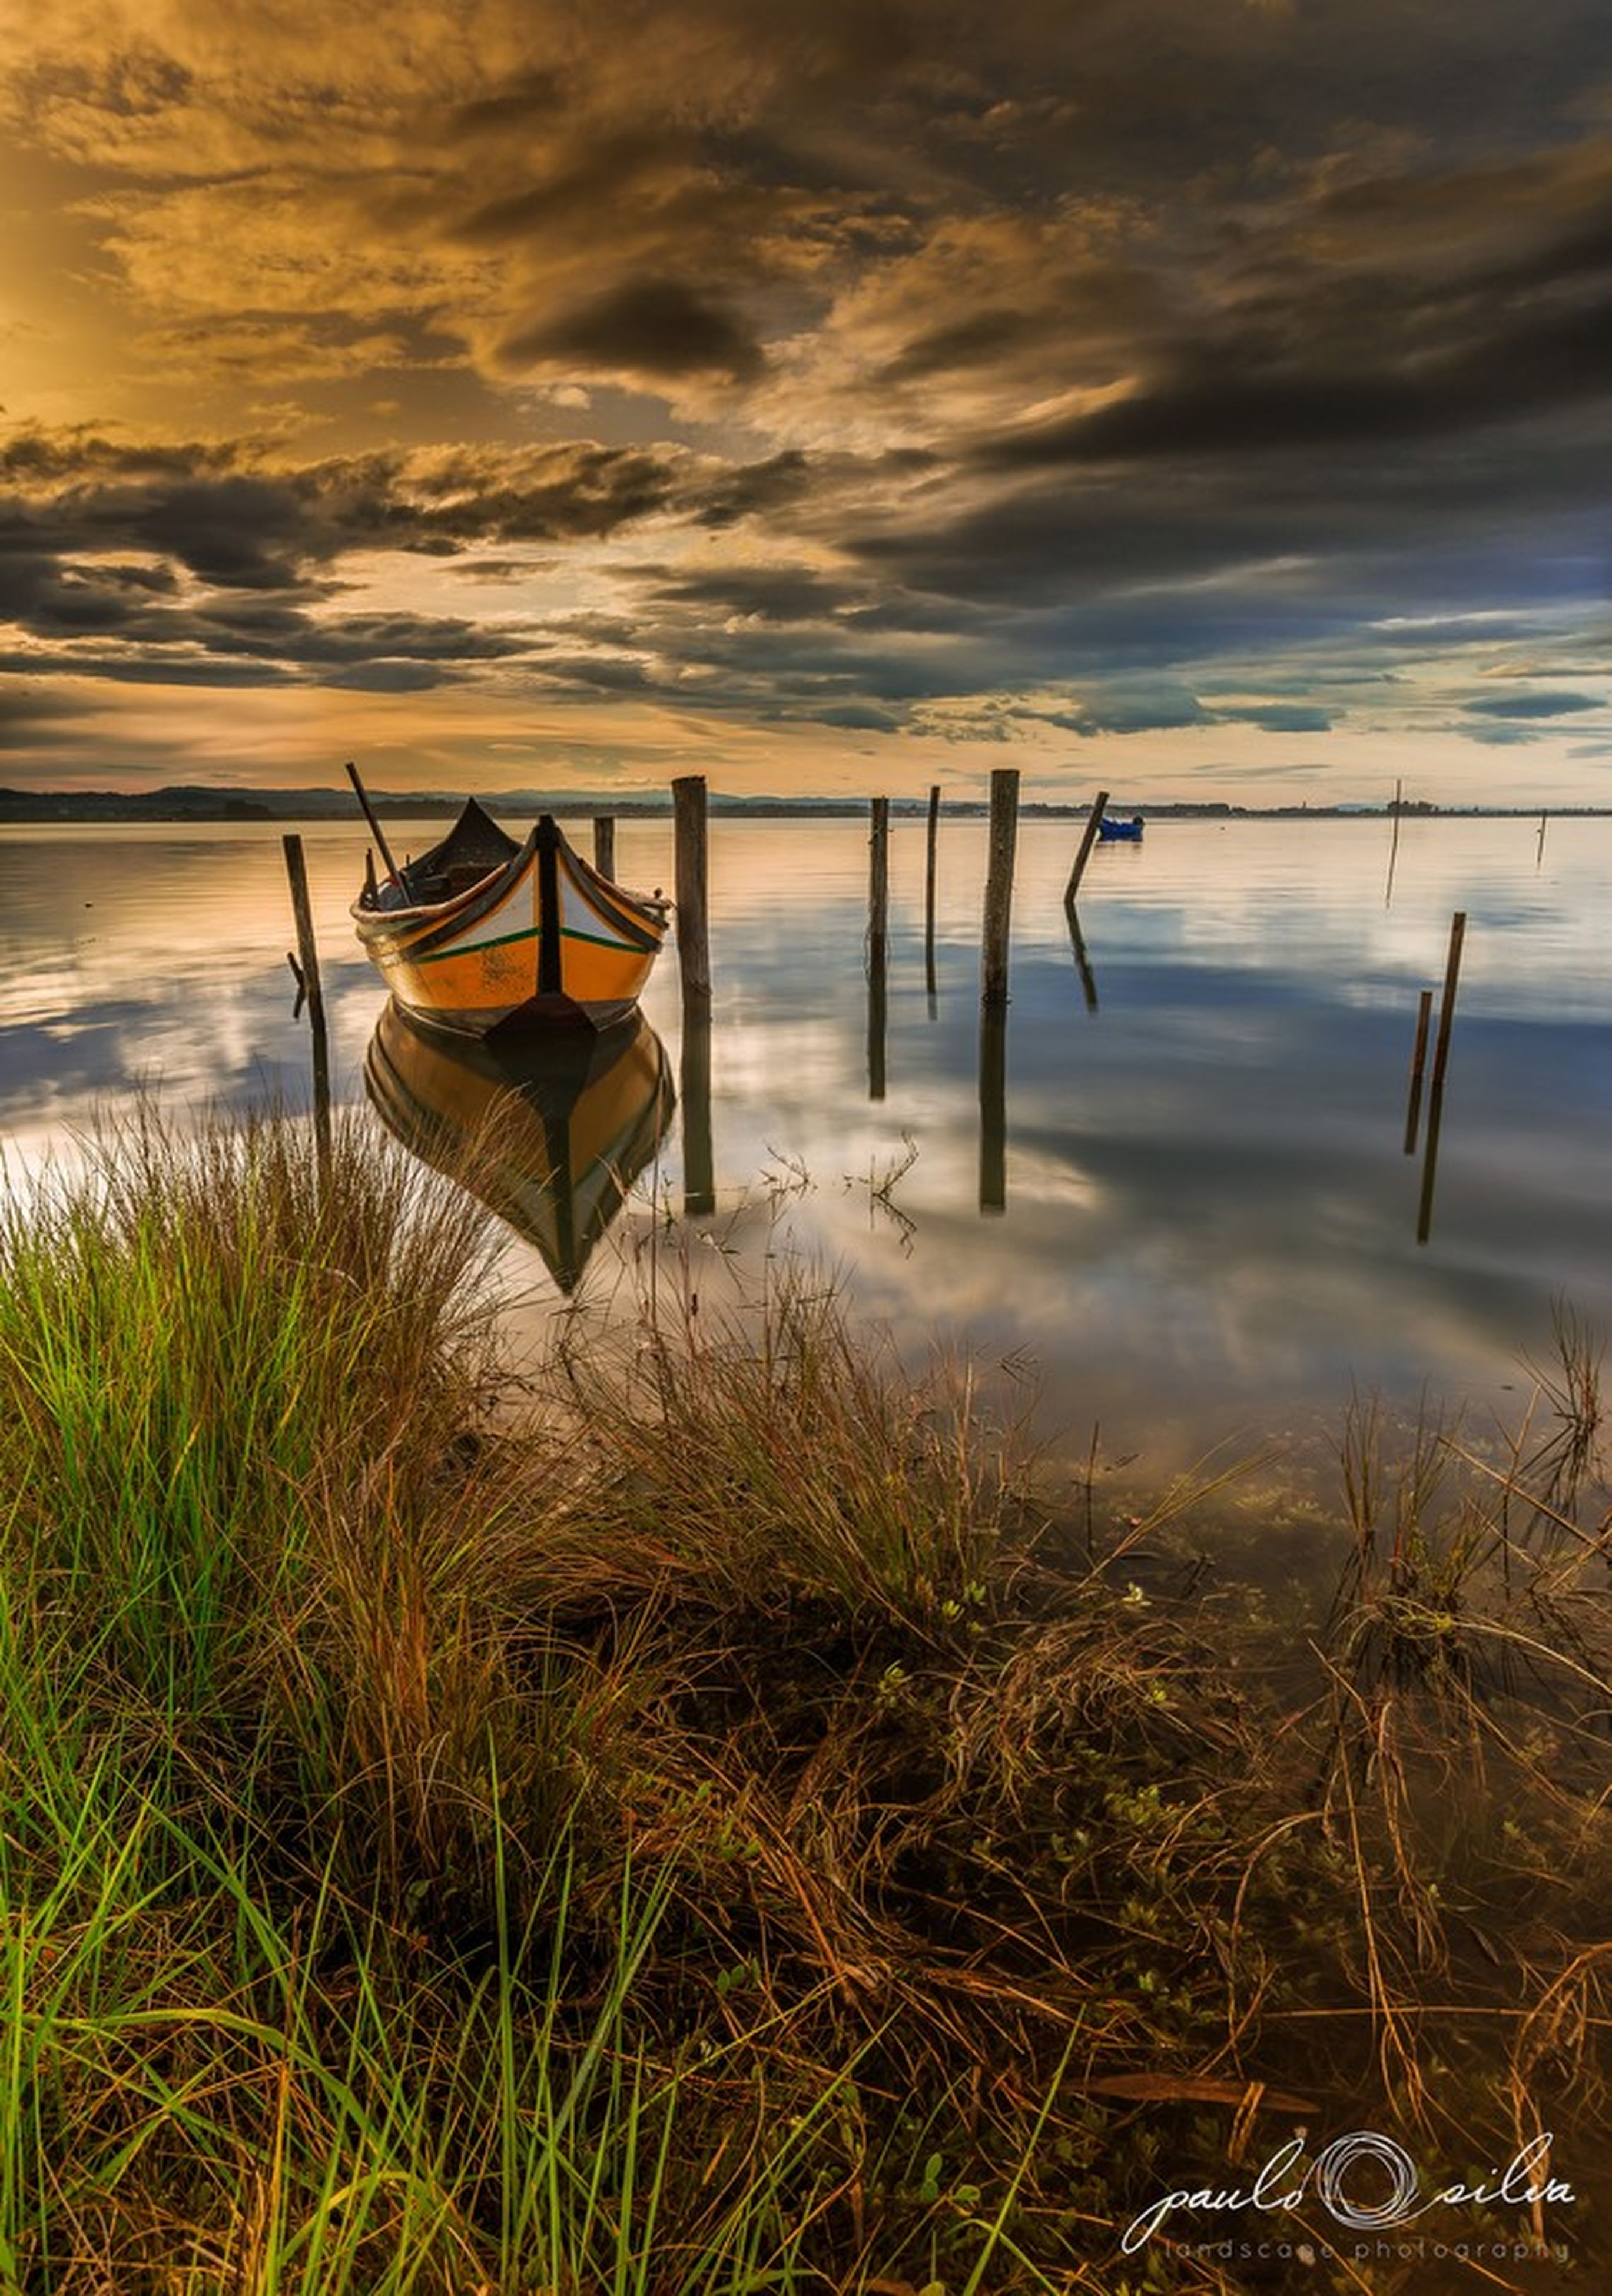 water, sky, grass, tranquility, cloud - sky, nautical vessel, nature, sea, boat, tranquil scene, beach, lake, cloud, beauty in nature, moored, shore, transportation, scenics, plant, cloudy